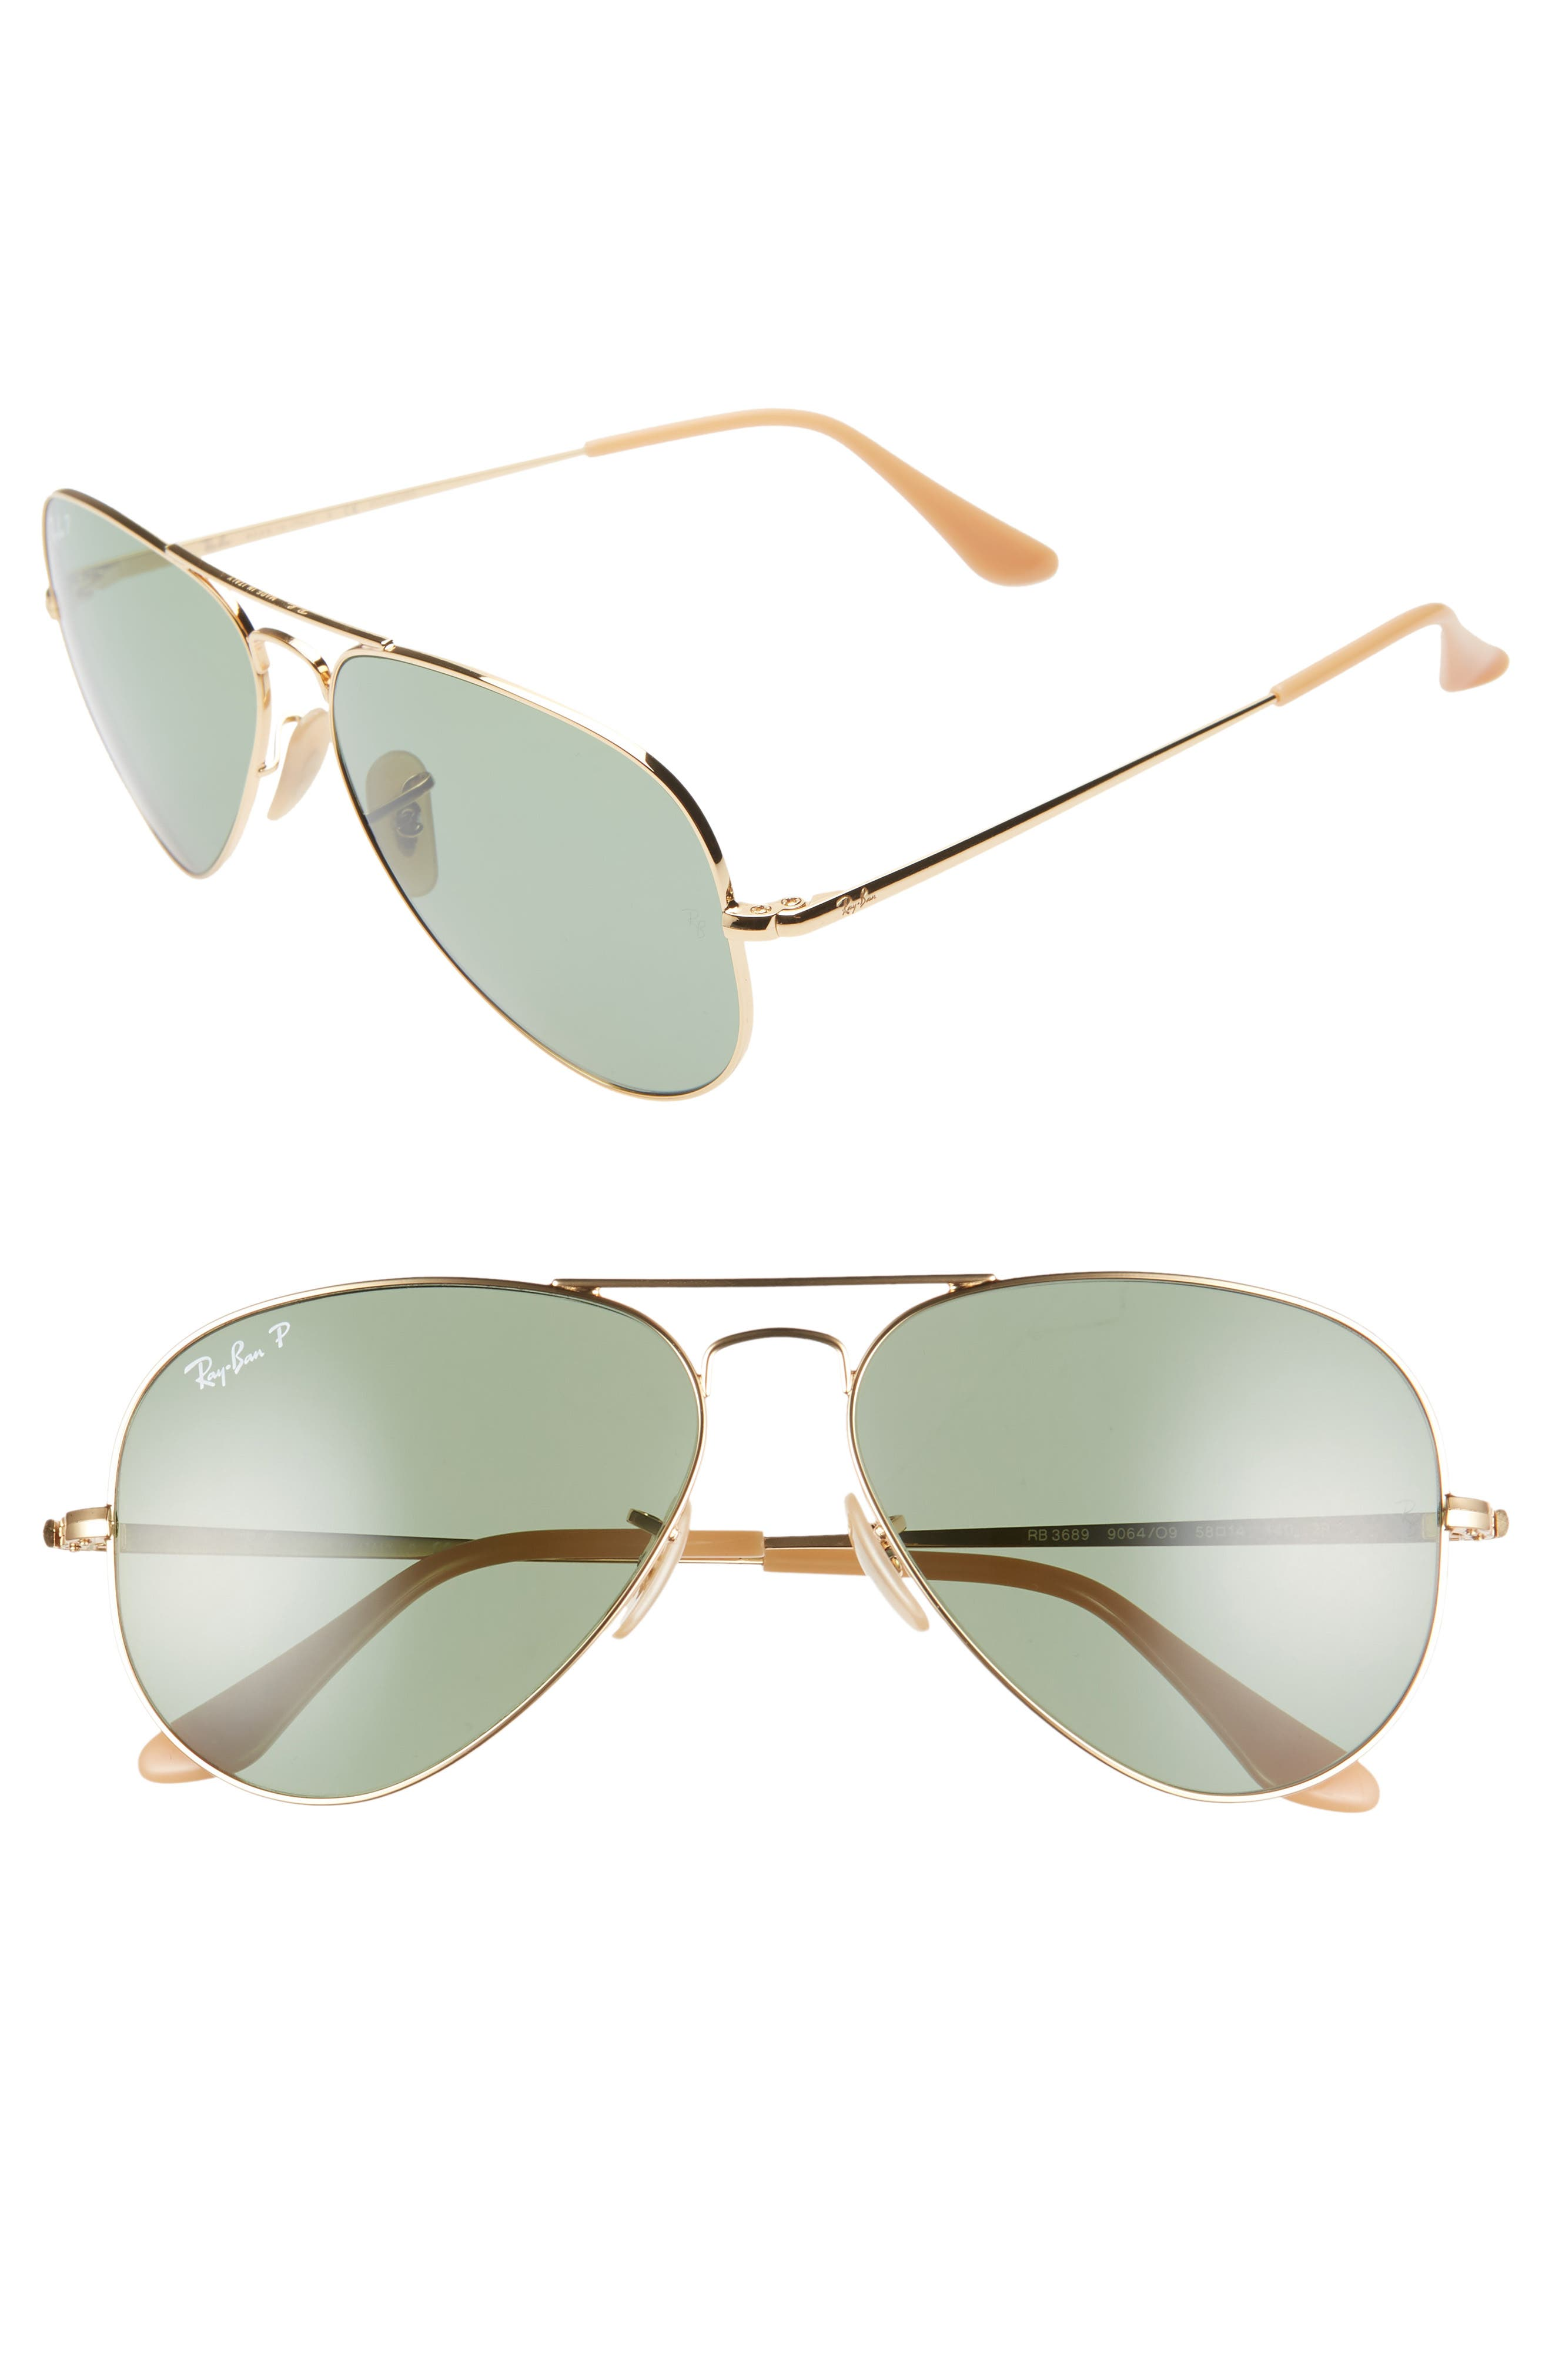 RAY-BAN, 58mm Polarized Aviator Sunglasses, Main thumbnail 1, color, GOLD/ GREEN SOLID